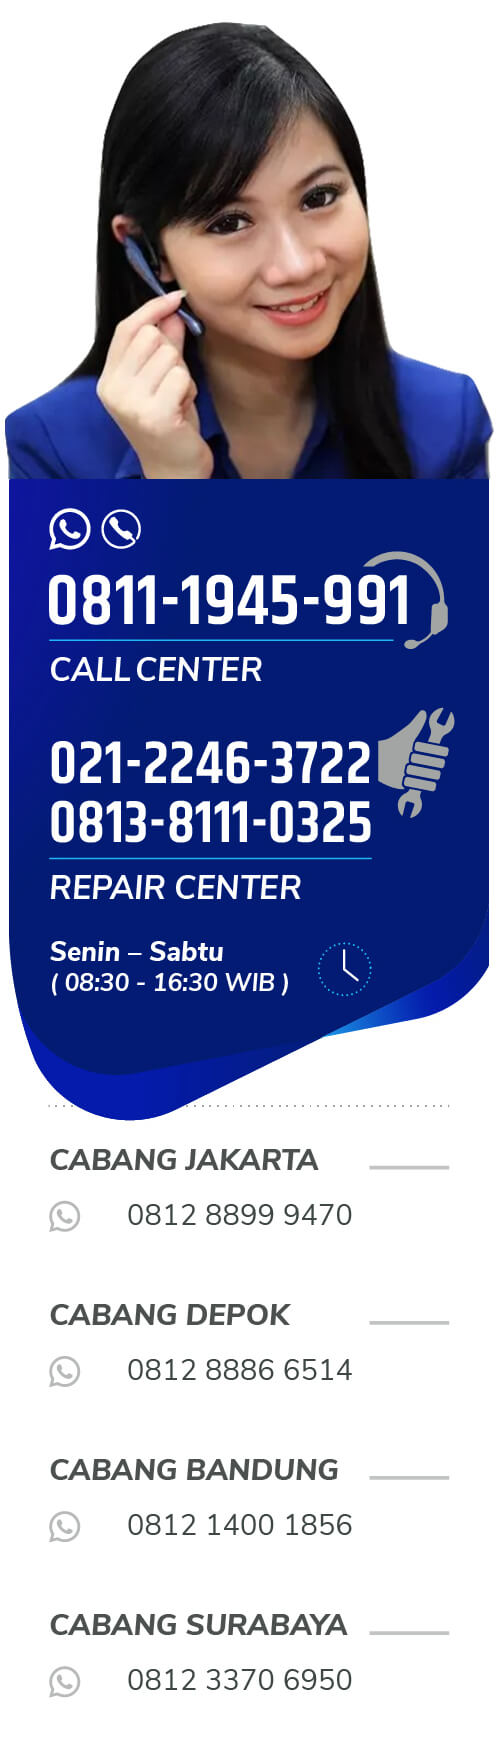 CALL CENTER RAMESIA